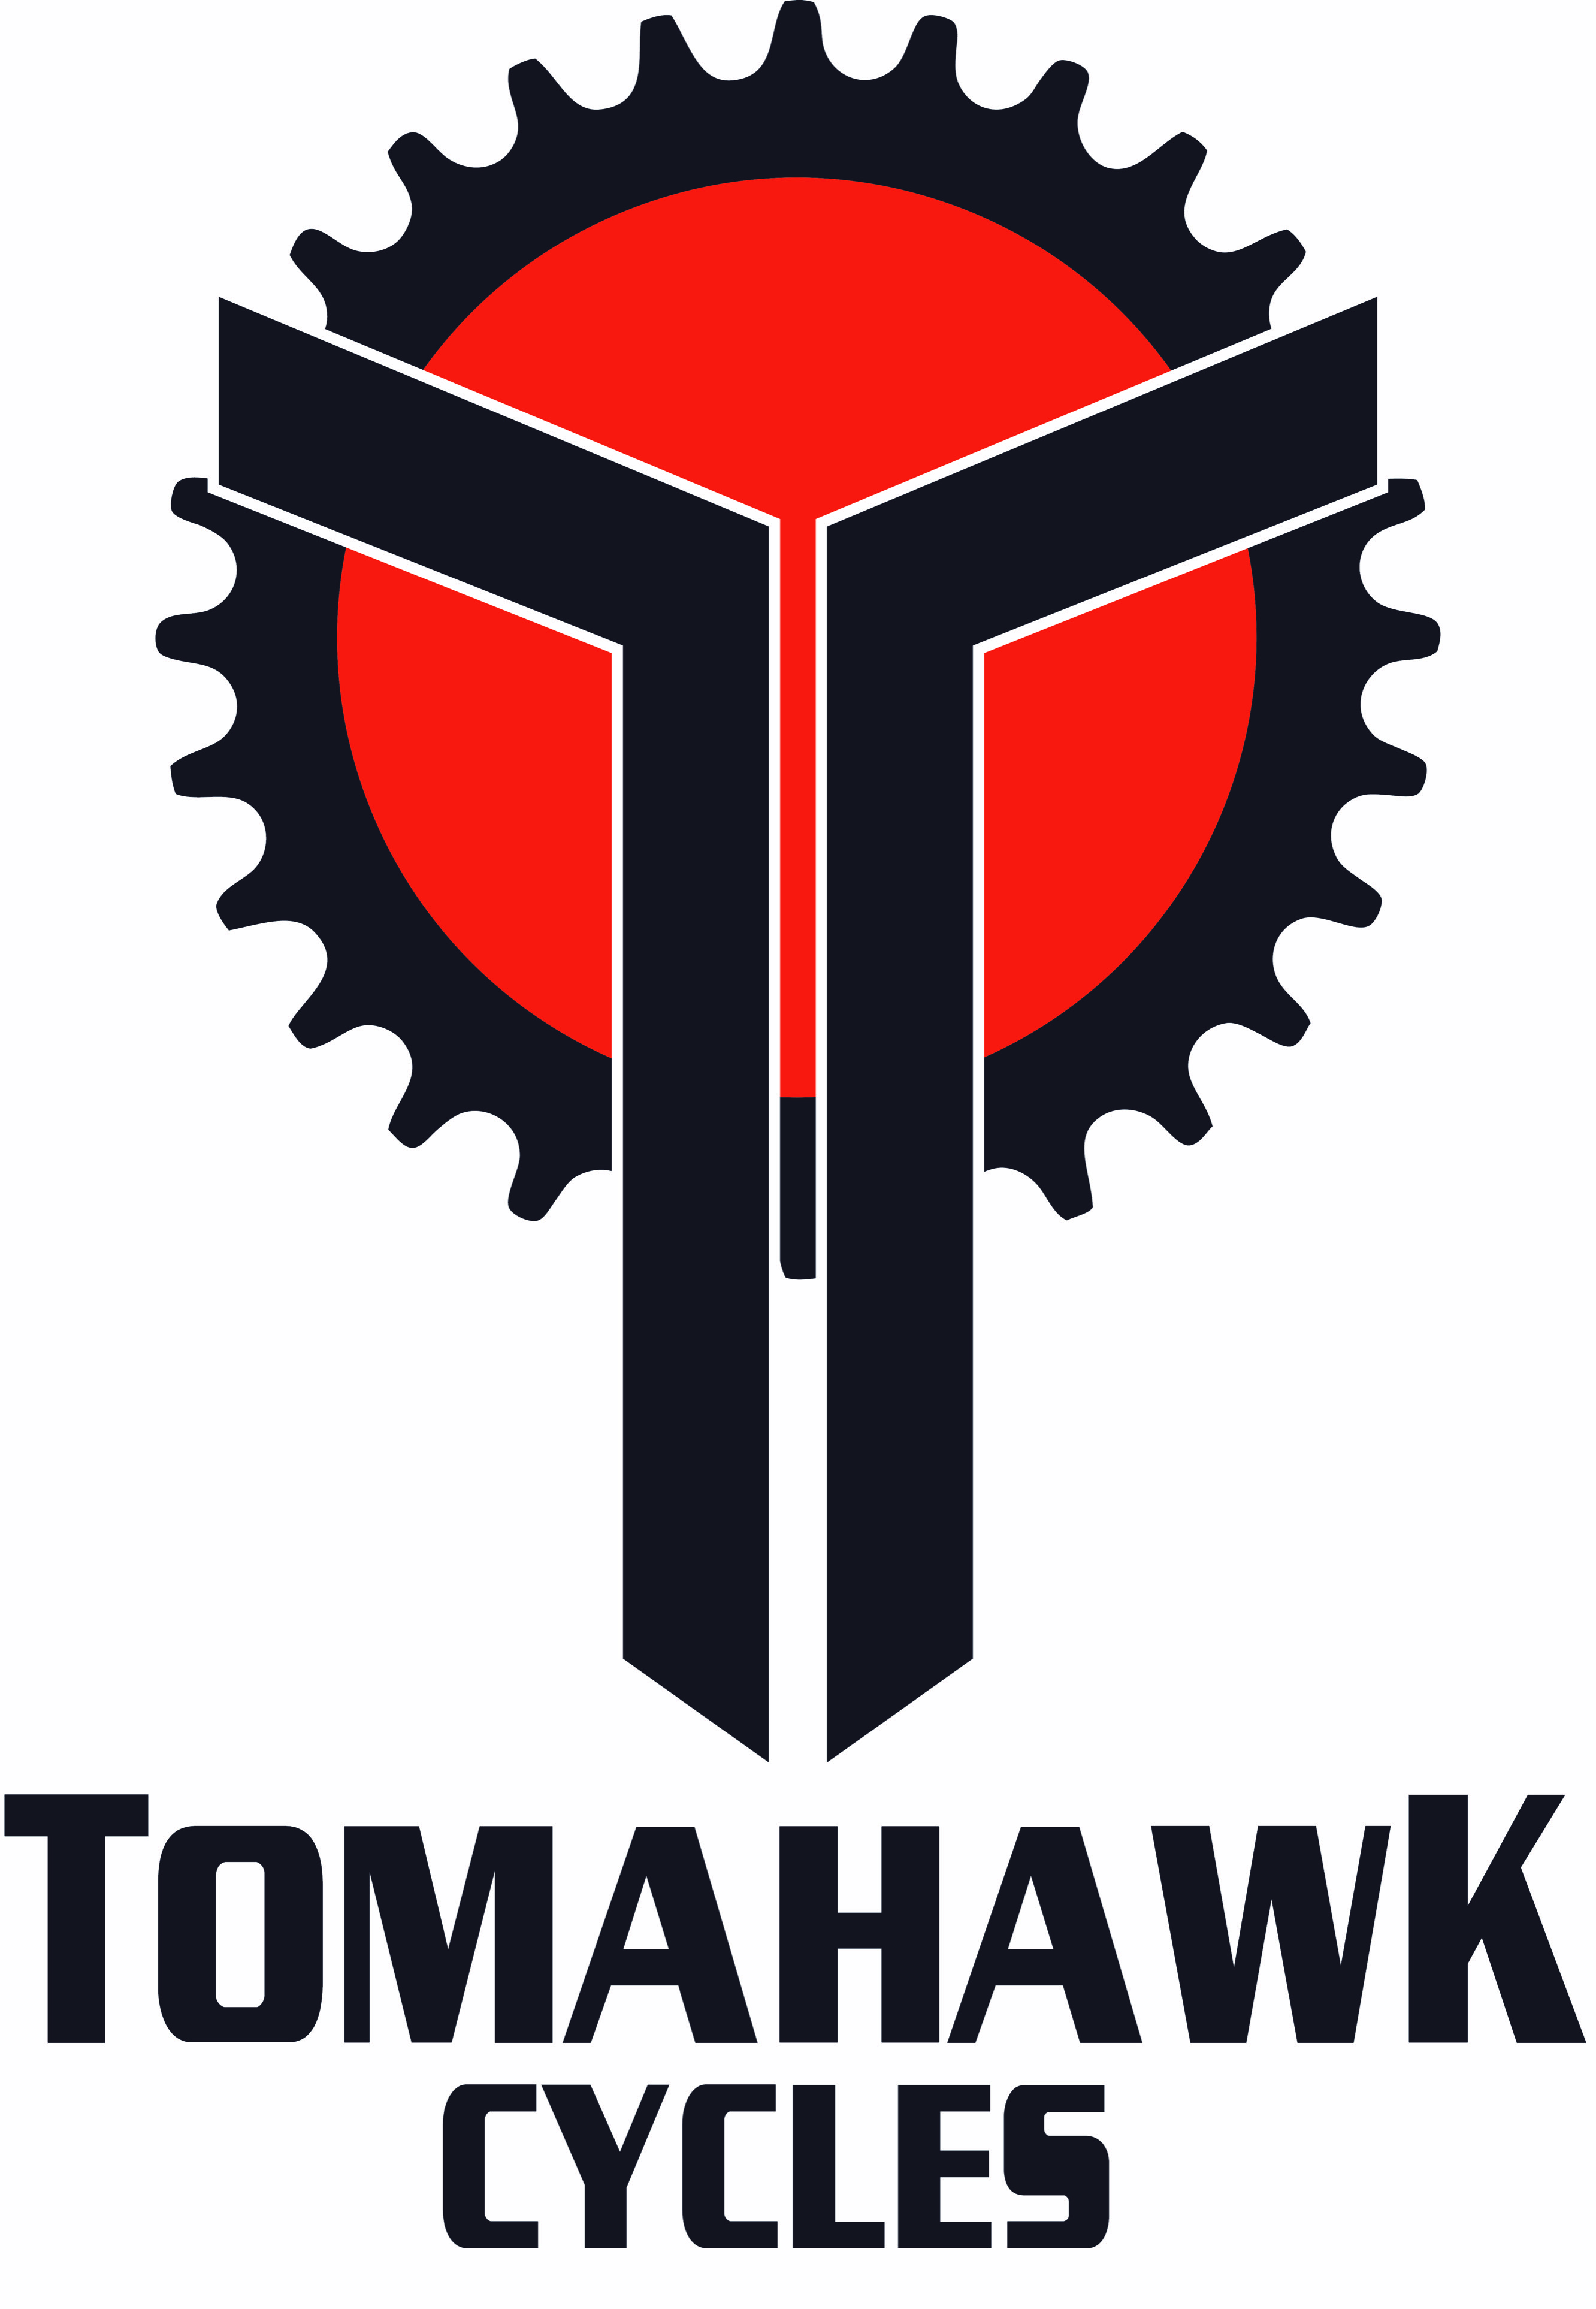 Tomahawk Cycles